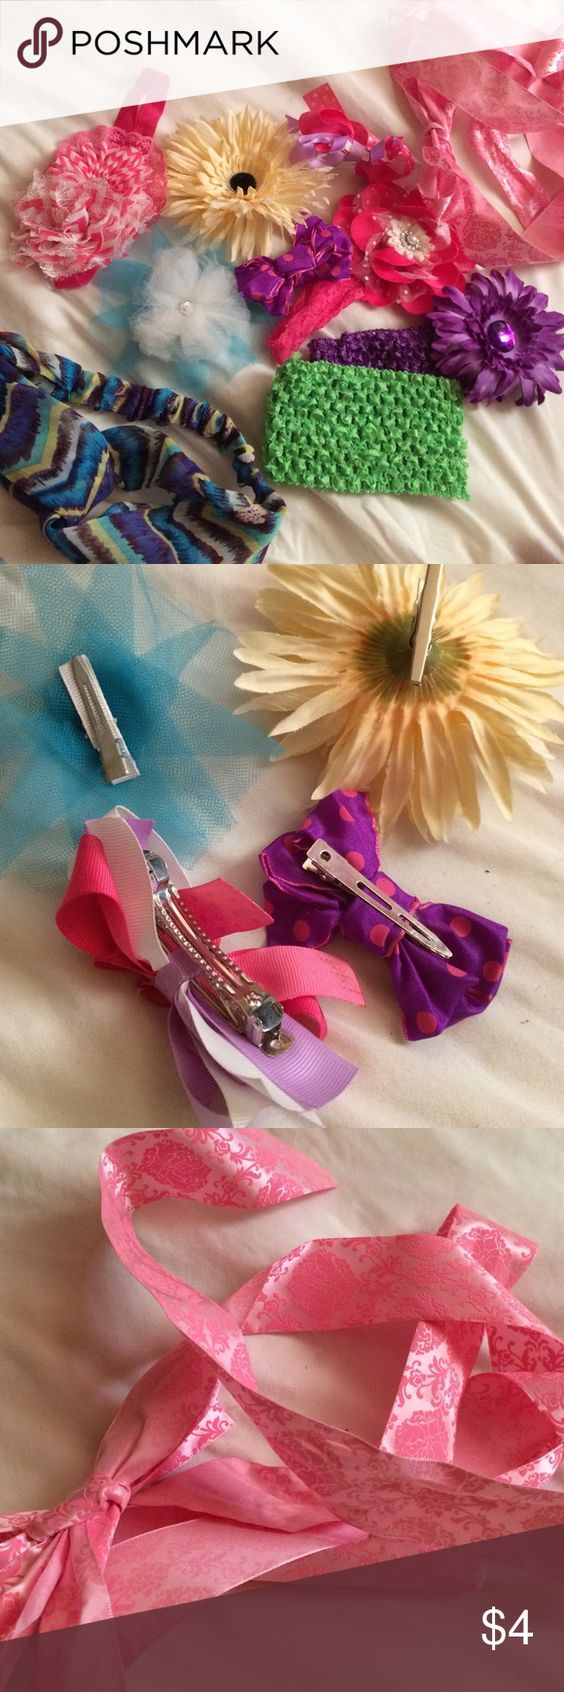 Hair accessories catalog request - Free With Purchase Of 5 Or More Girls Hair Accessories Free With 5 Purchase Upon Request